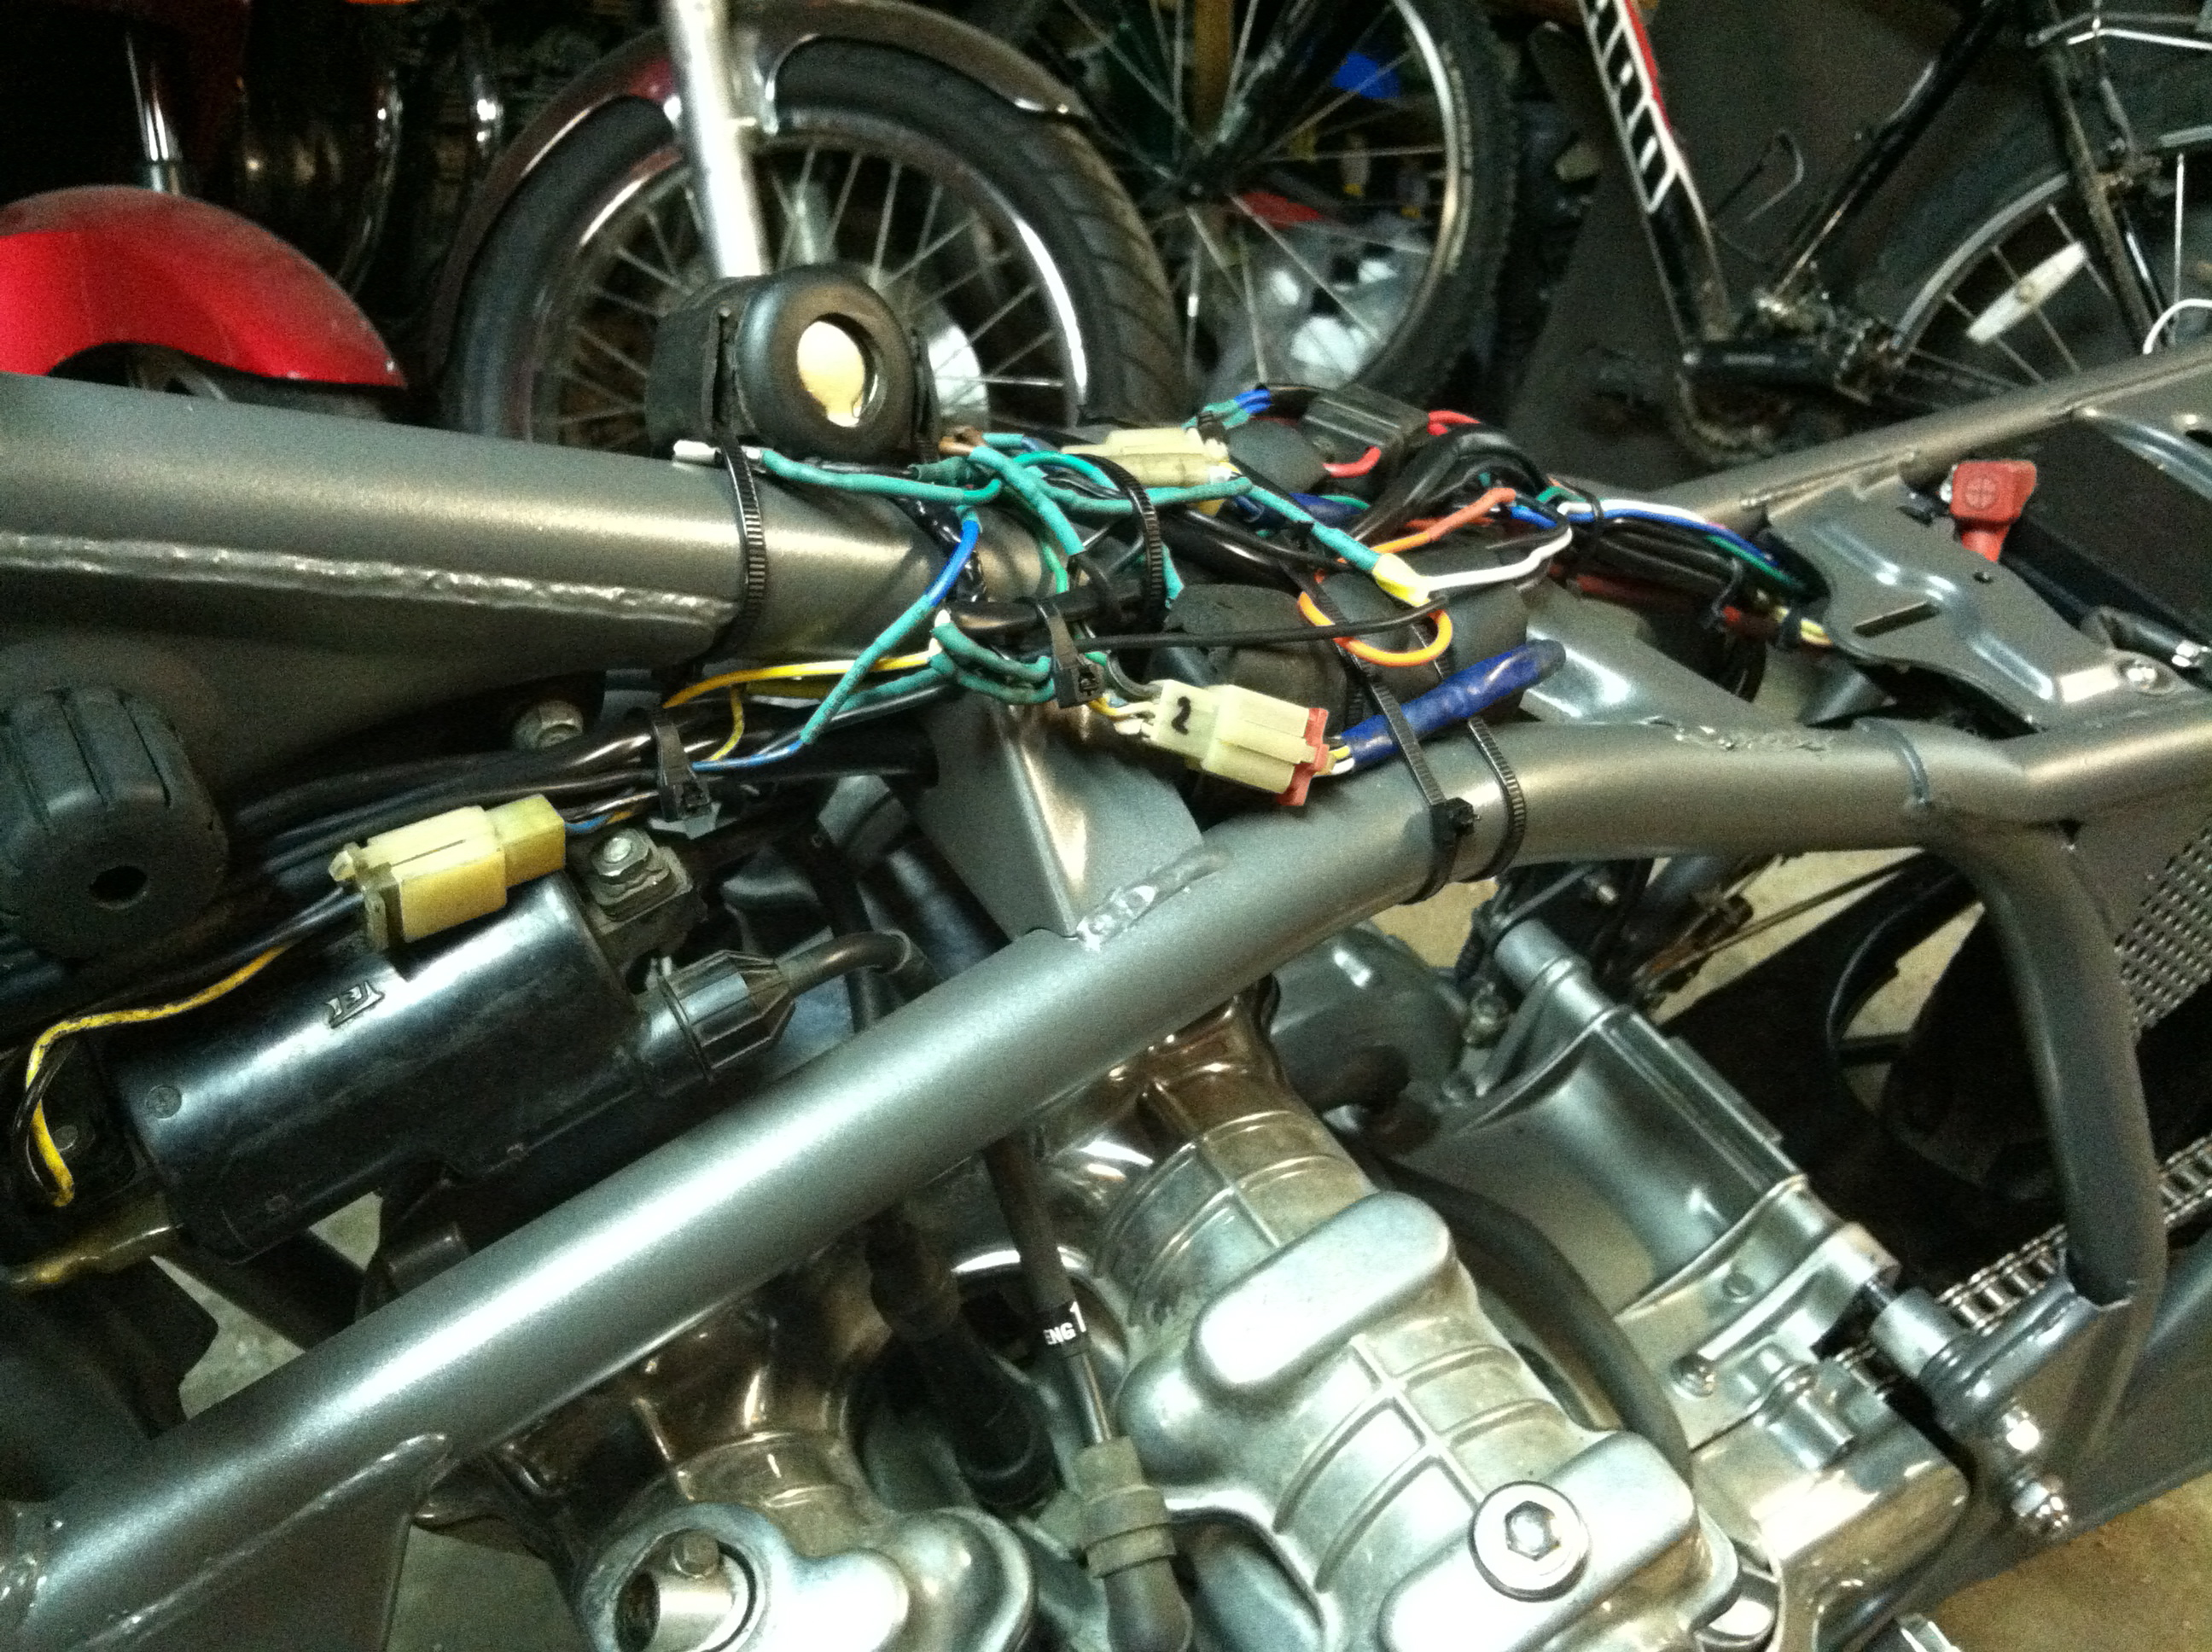 img_0247 wiring one up moto garage cb750 wiring harness routing at readyjetset.co